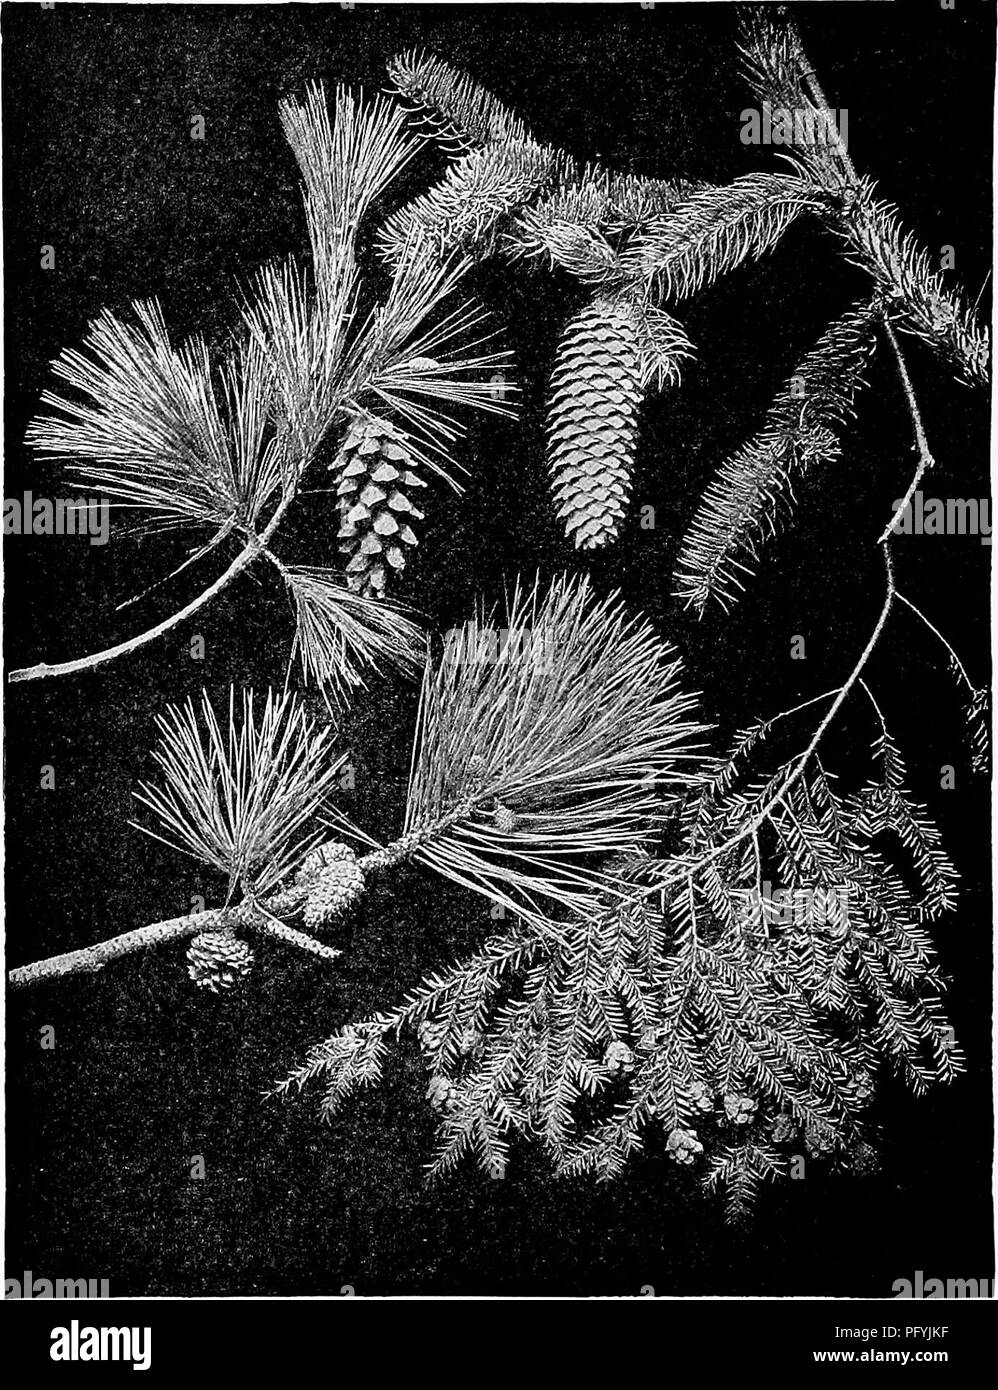 . Handbook of nature-study for teachers and parents, based on the Cornell nature-study leaflets. Nature study. While pine. Pitch pine Norway spruce Hemlock. Please note that these images are extracted from scanned page images that may have been digitally enhanced for readability - coloration and appearance of these illustrations may not perfectly resemble the original work.. Comstock, Anna Botsford, 1854-1930. Ithaca, N. Y. , Comstock Publishing Company - Stock Image